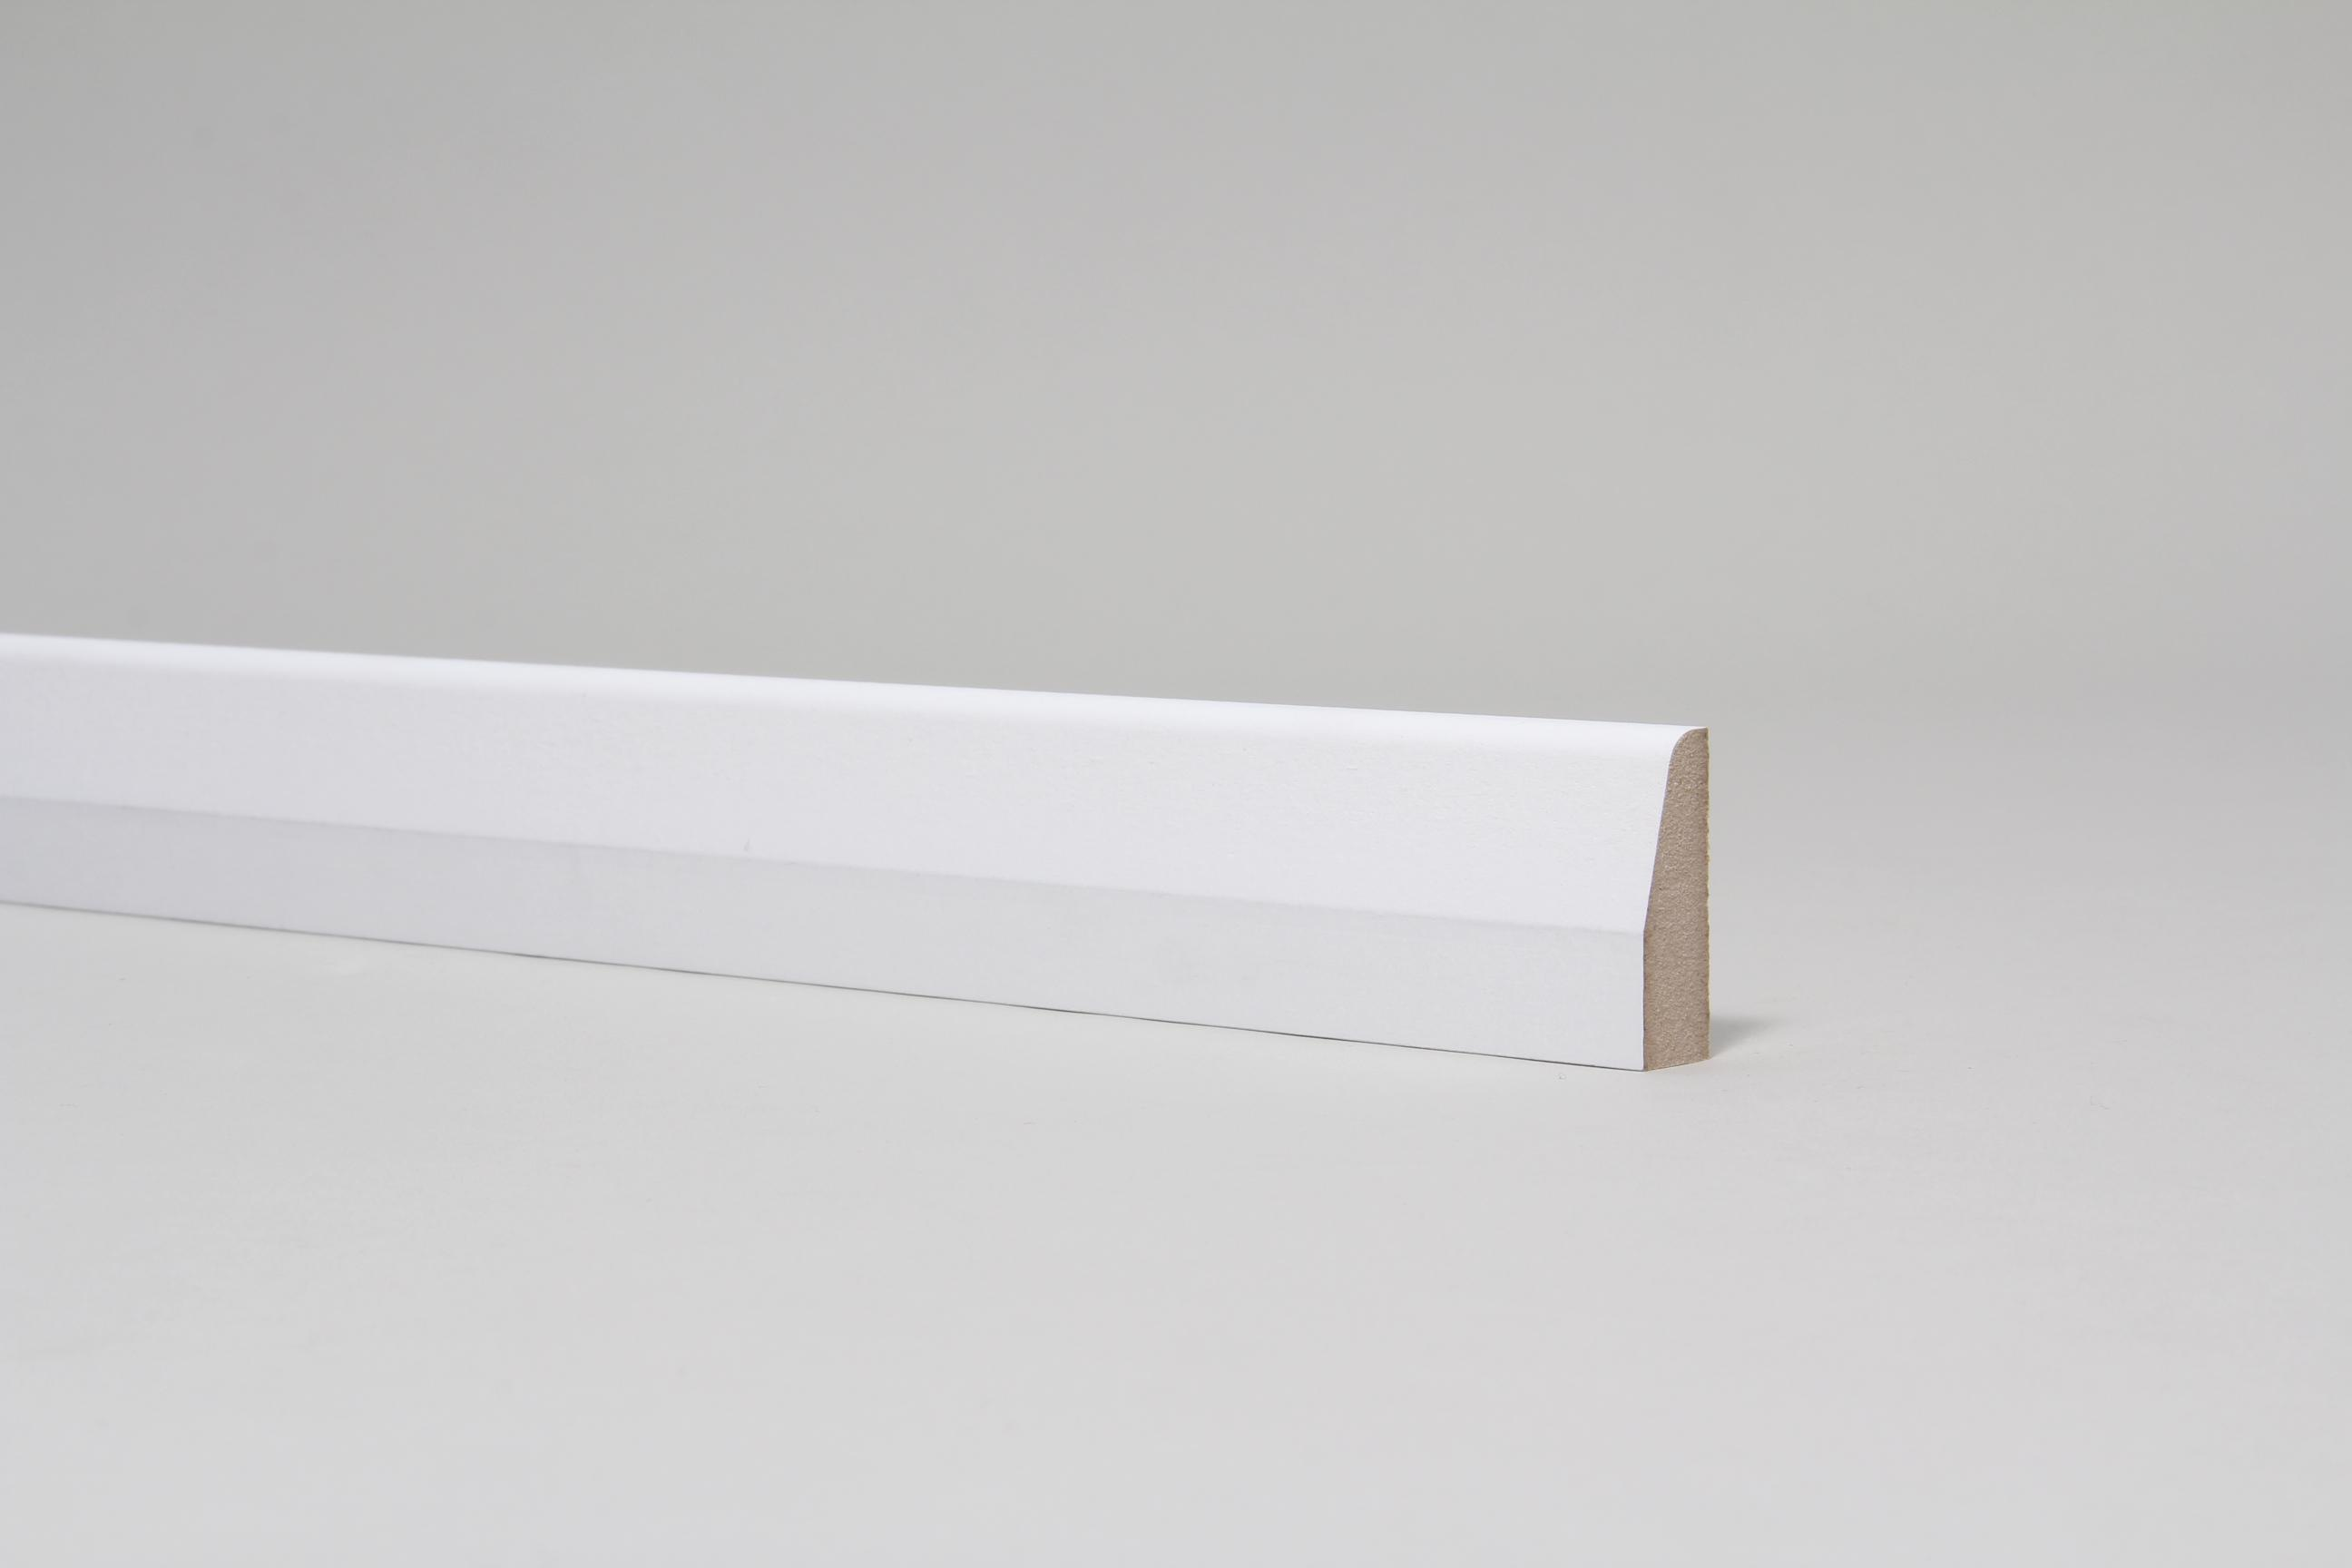 Chamfered & Rounded 15mm x 44mm Architrave Set Primed